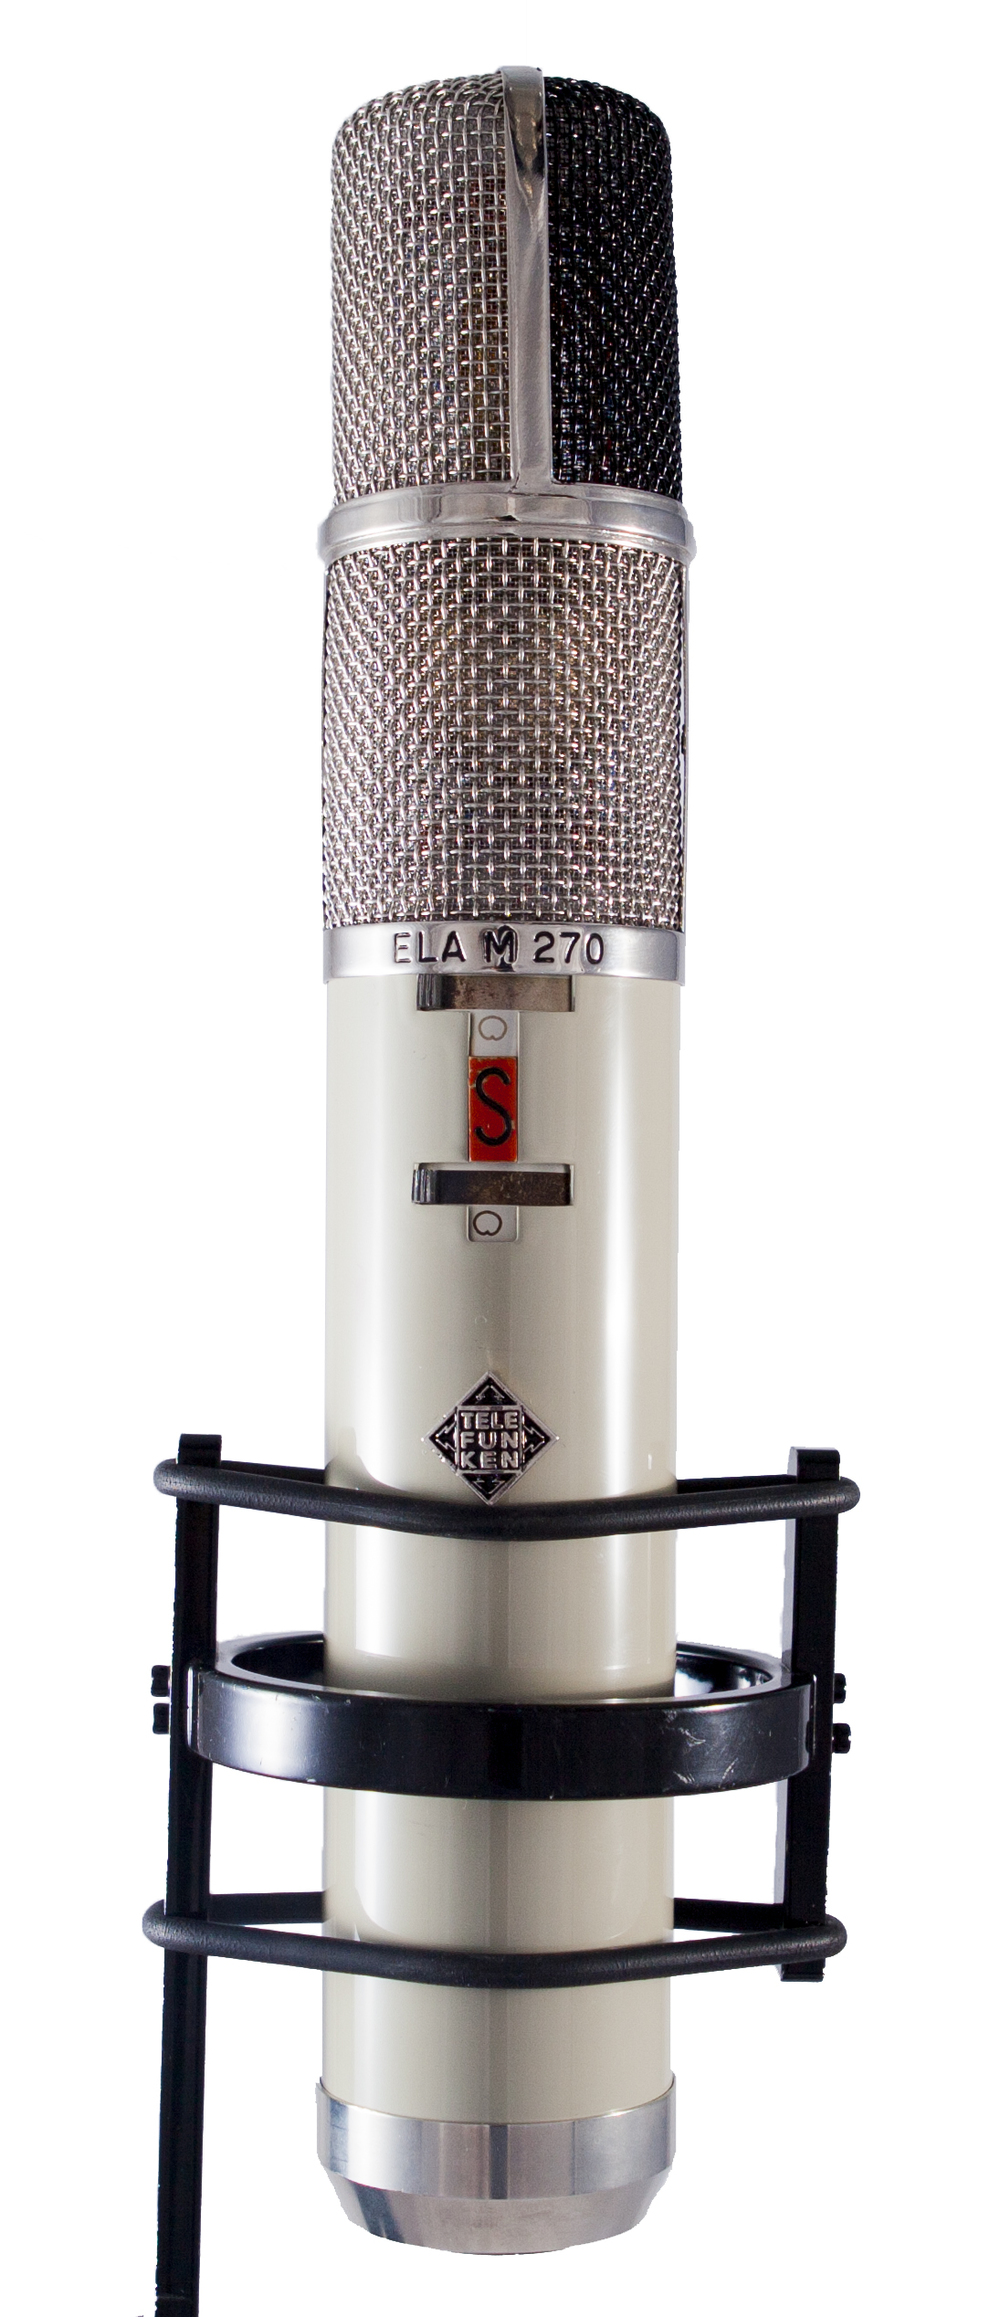 Telefunken ELAM 270 - Not for hire